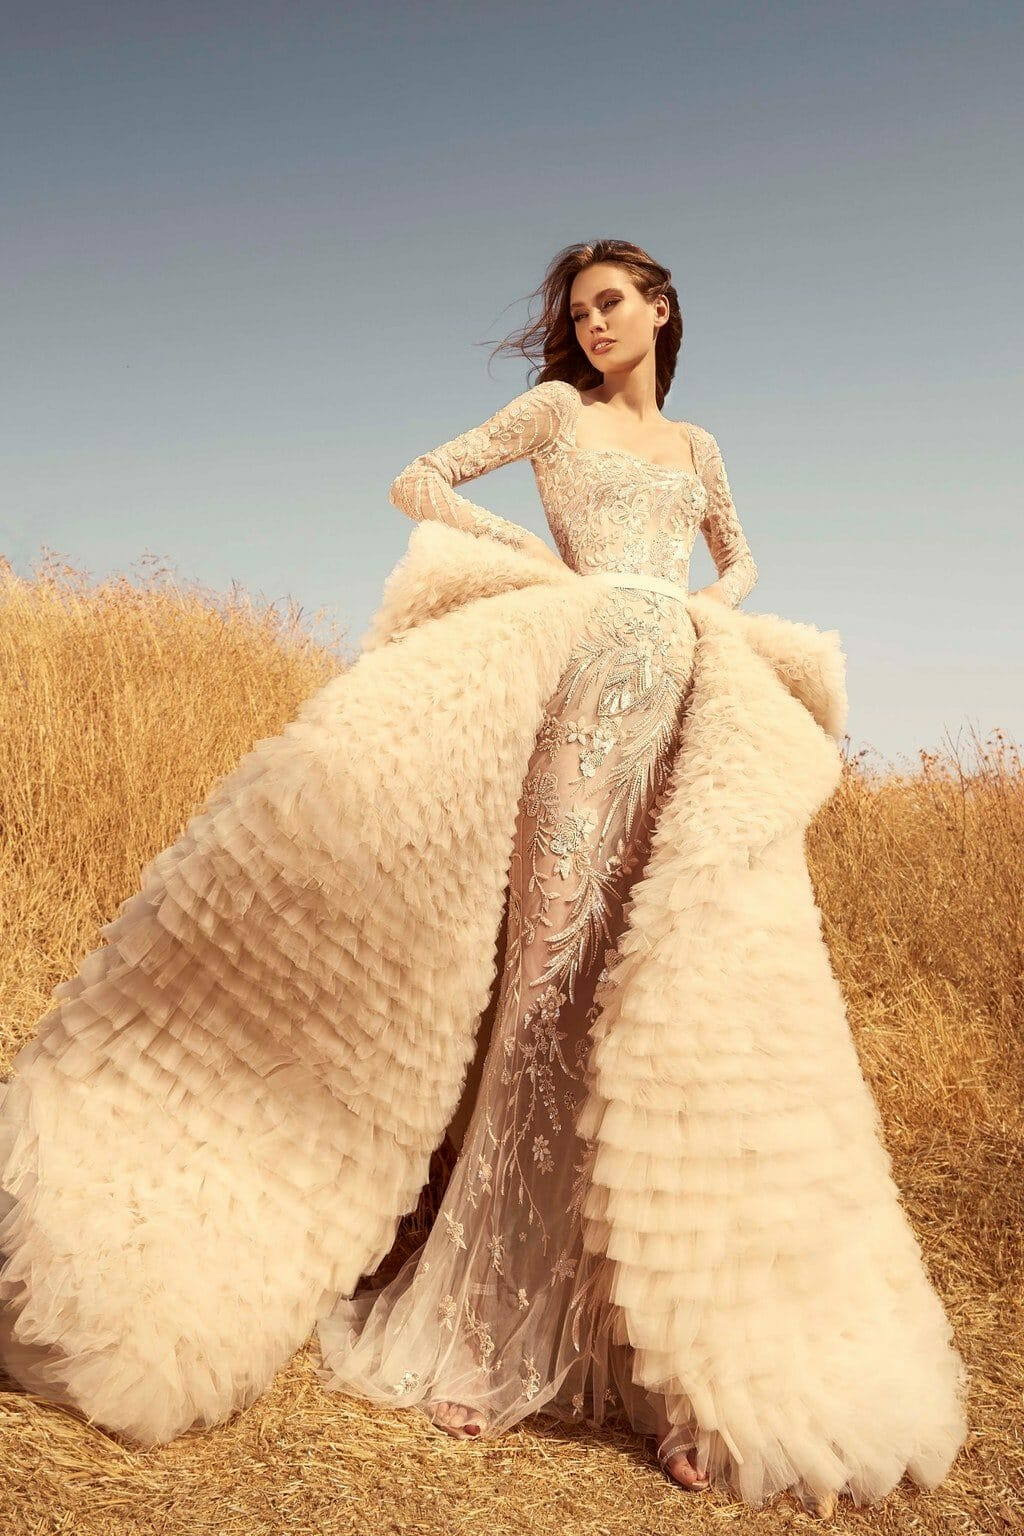 Zuhair Murad Bridal Fall Winter 2020-2021. RUNWAY MAGAZINE ® Collections. RUNWAY NOW / RUNWAY NEW